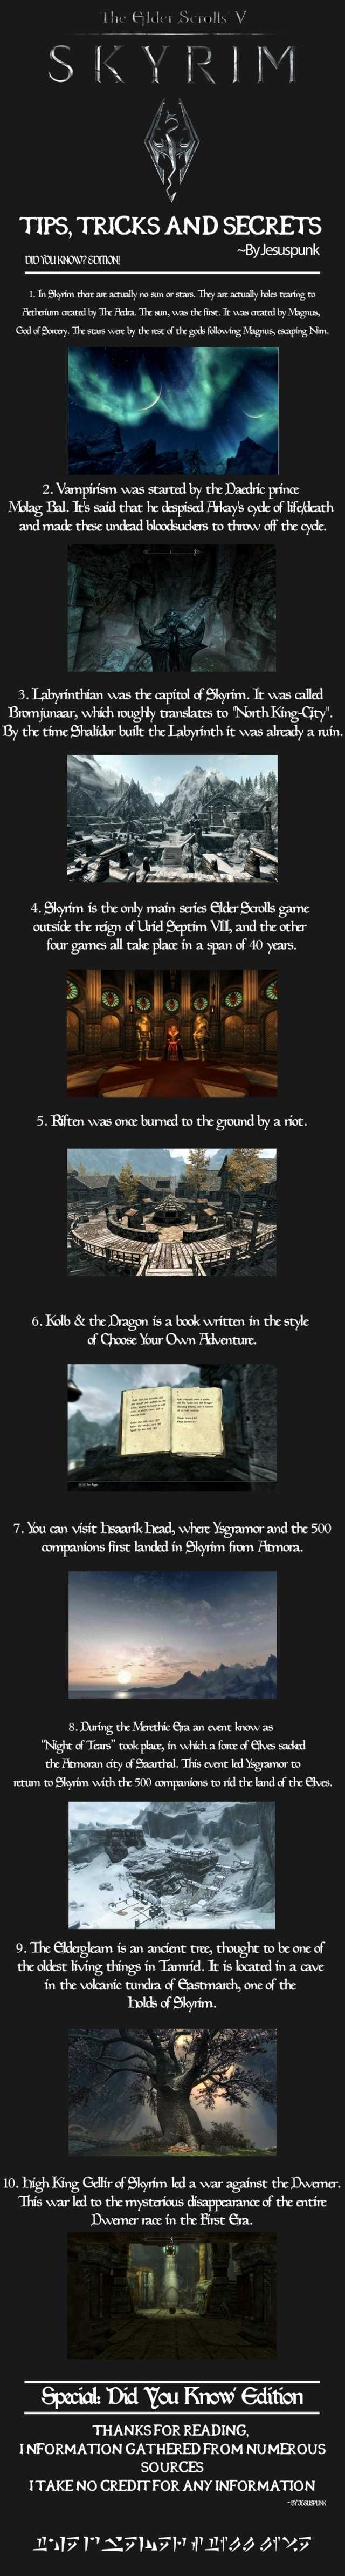 How To Get Rid Of Being A Vampire In Skyrim